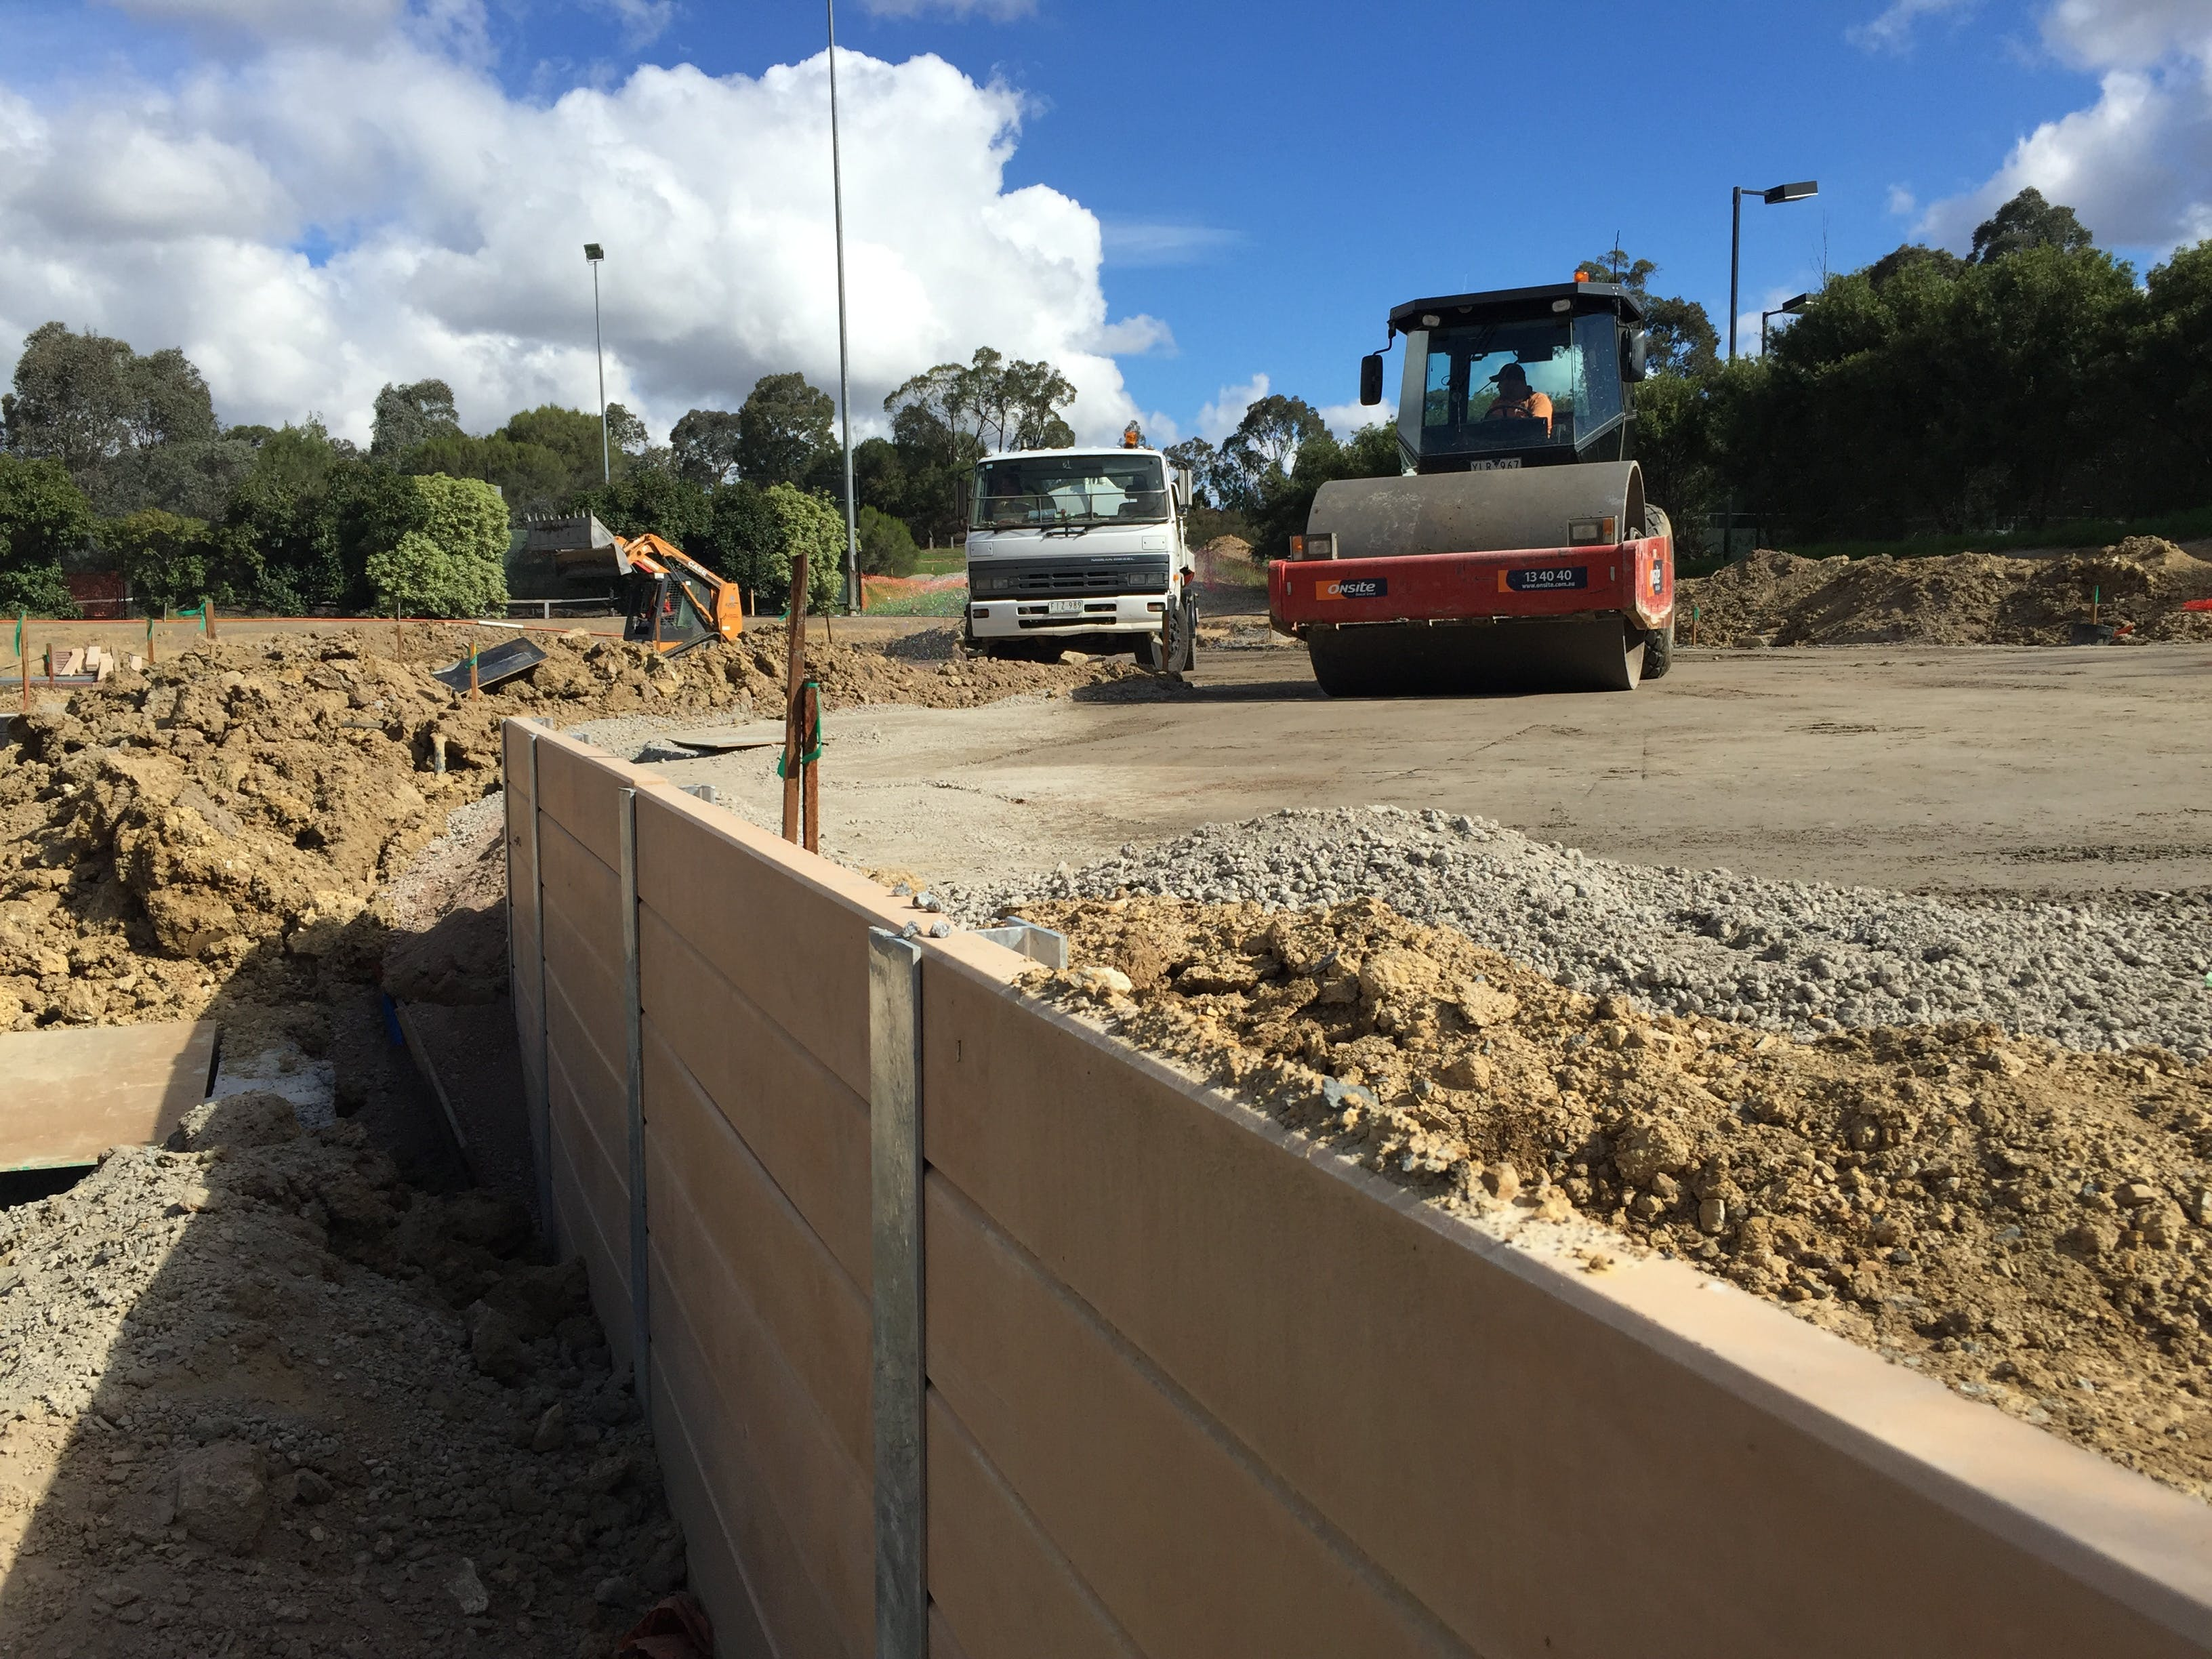 The new car park between the tennis courts and bowling green is taking shape with the construction of retaining walls.